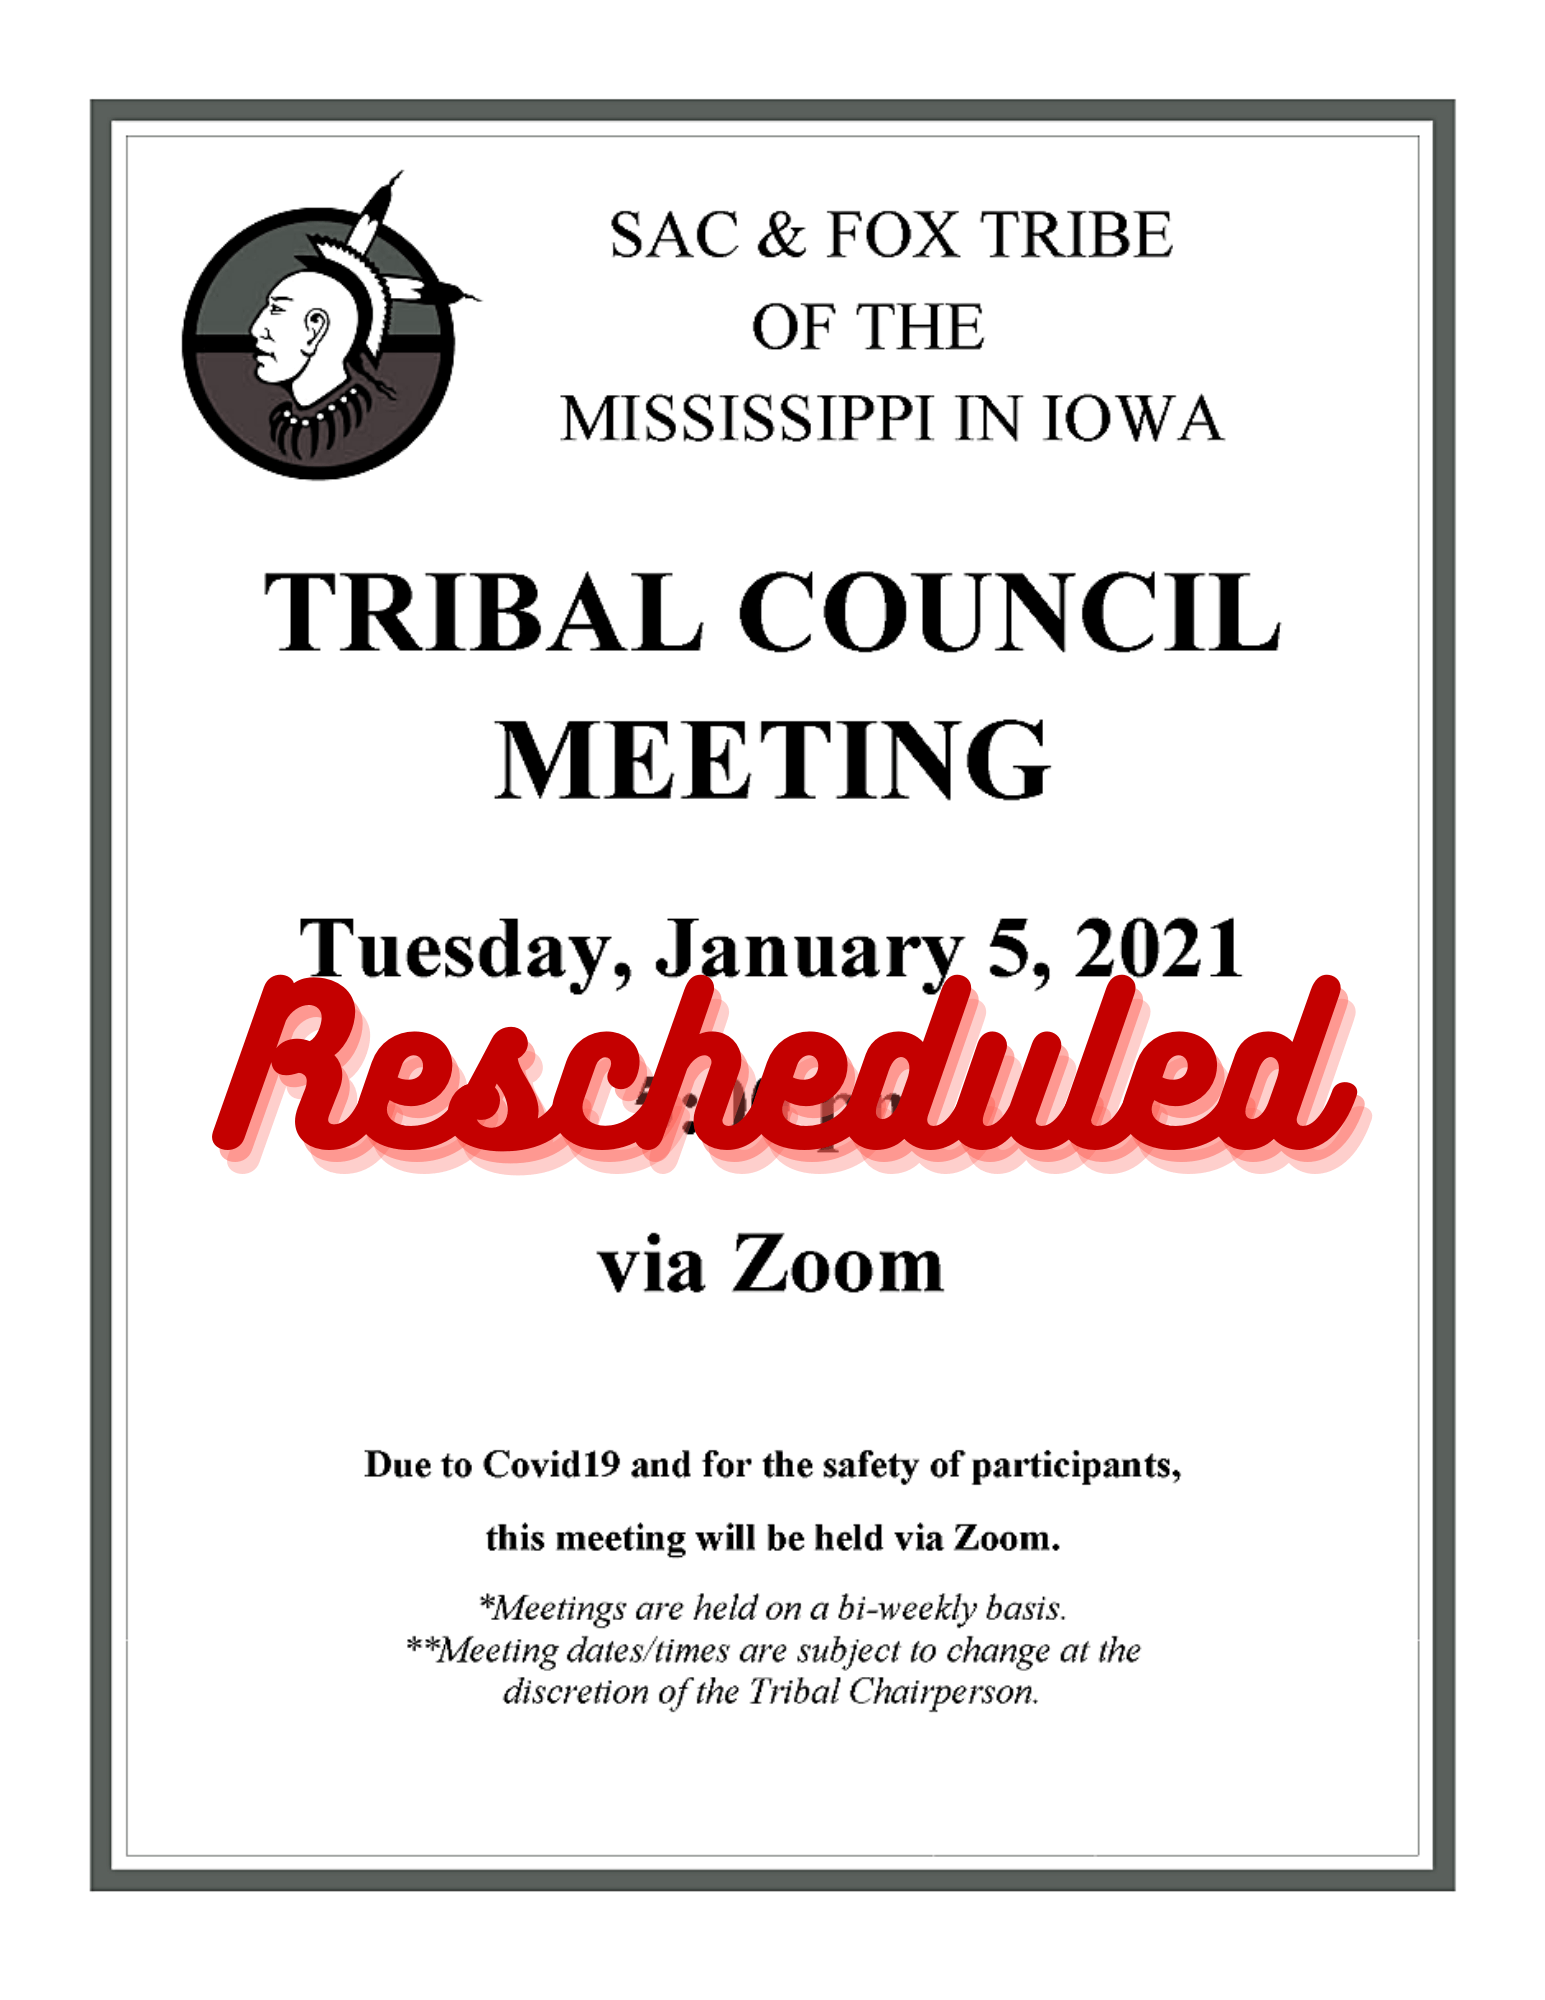 Notification of the rescheduling of the January 5, 2021 Tribal Council Meeting